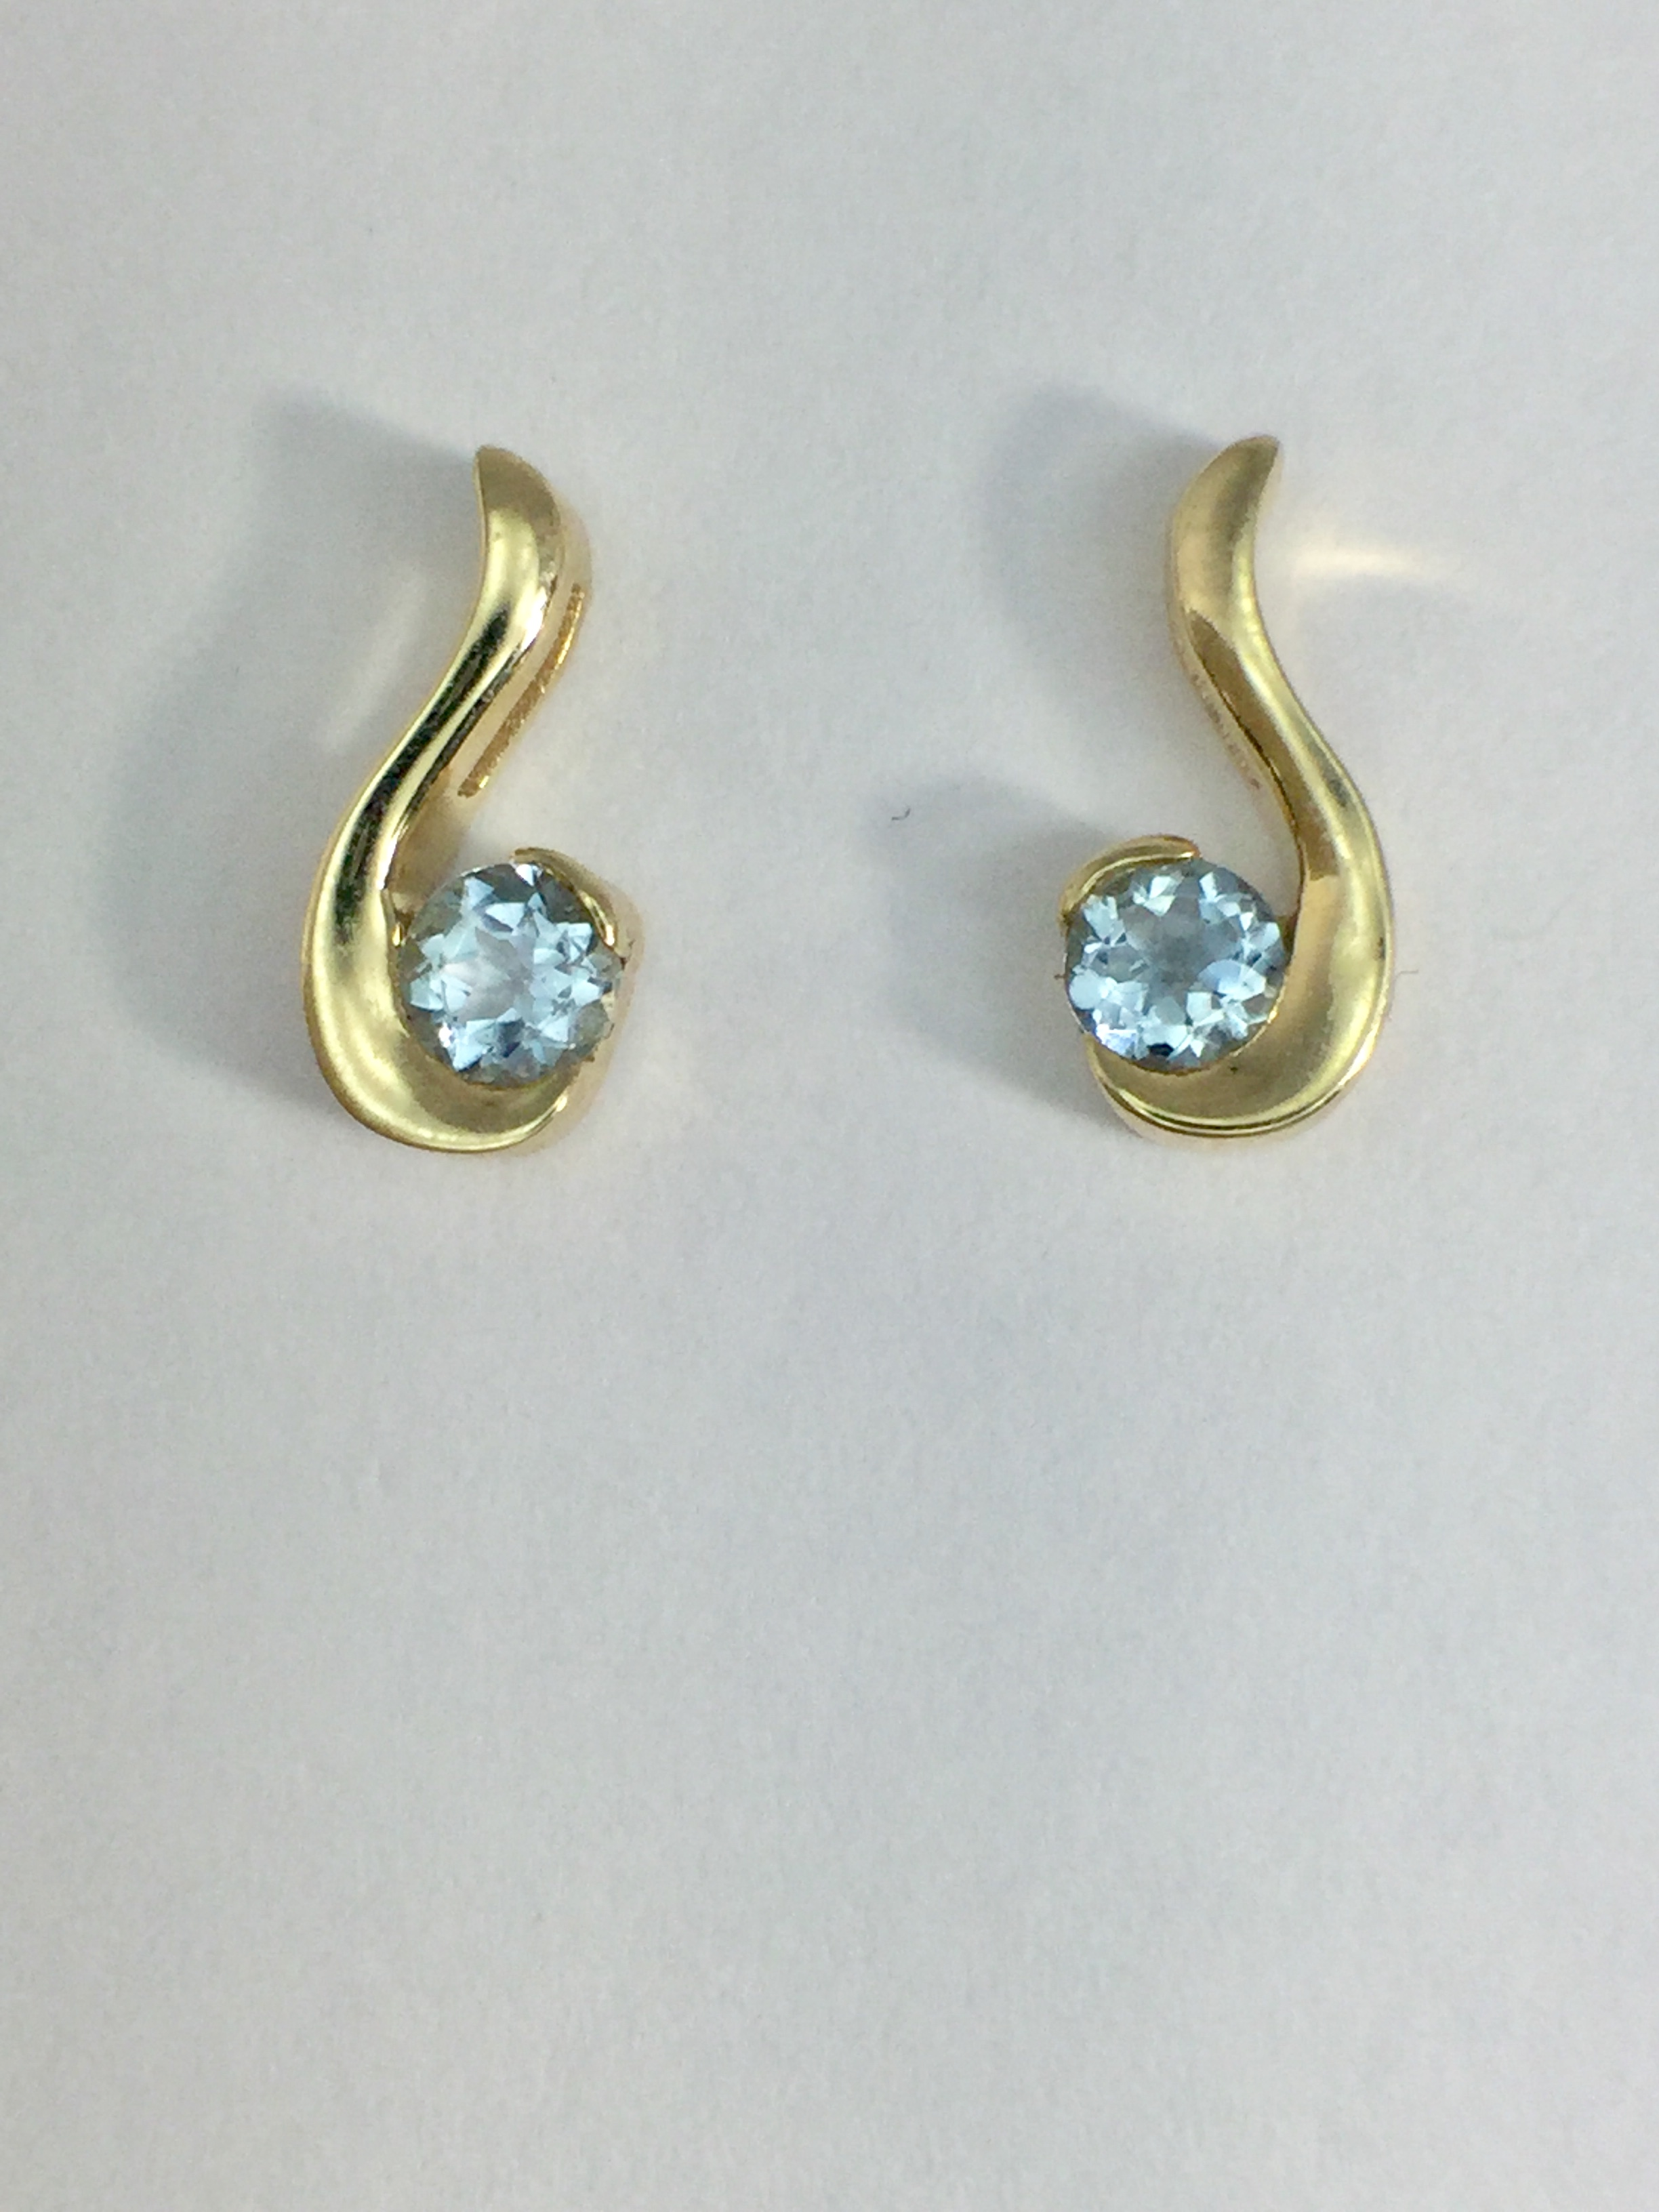 14k Yellow Gold Moonglow Earrings with Aquamarine